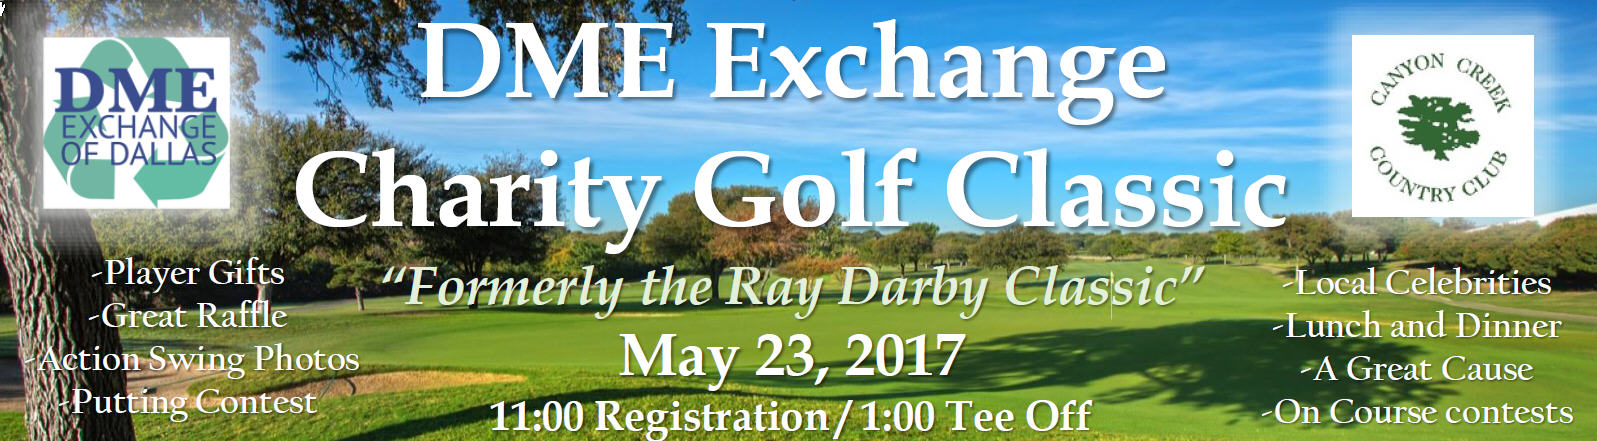 2017 DME Exchange Charity Golf Classic